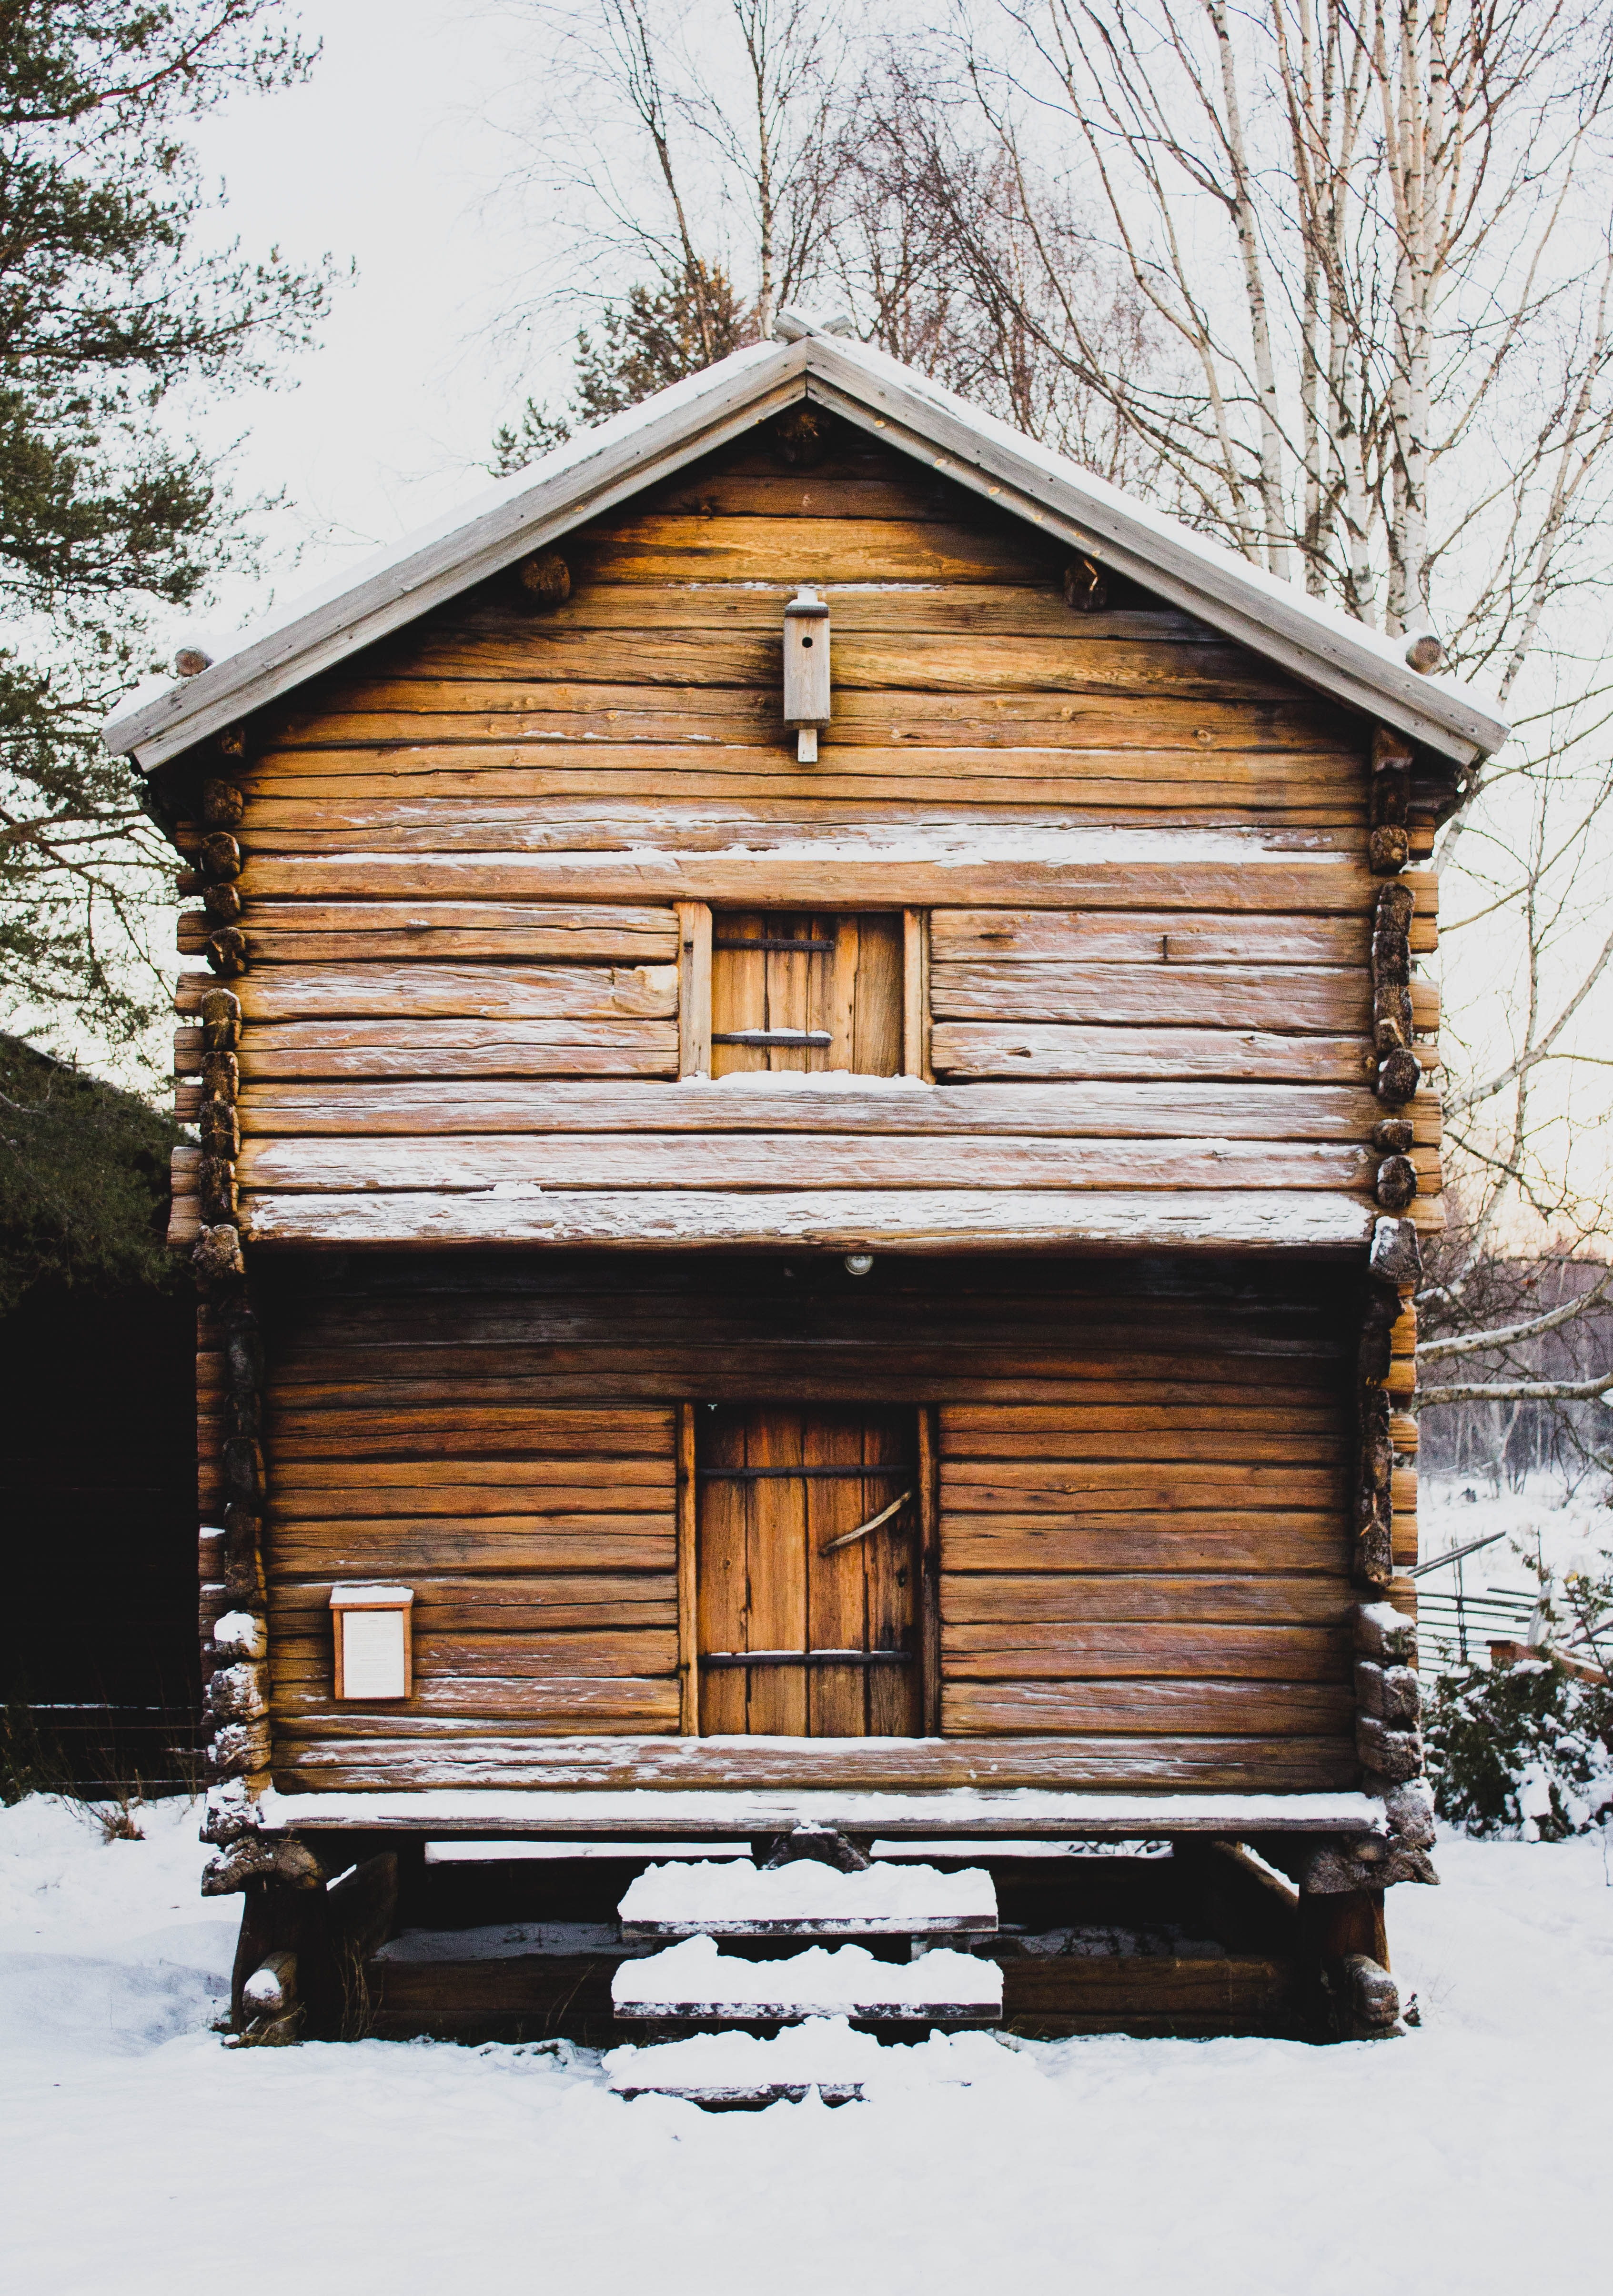 brown wooden house during winter season